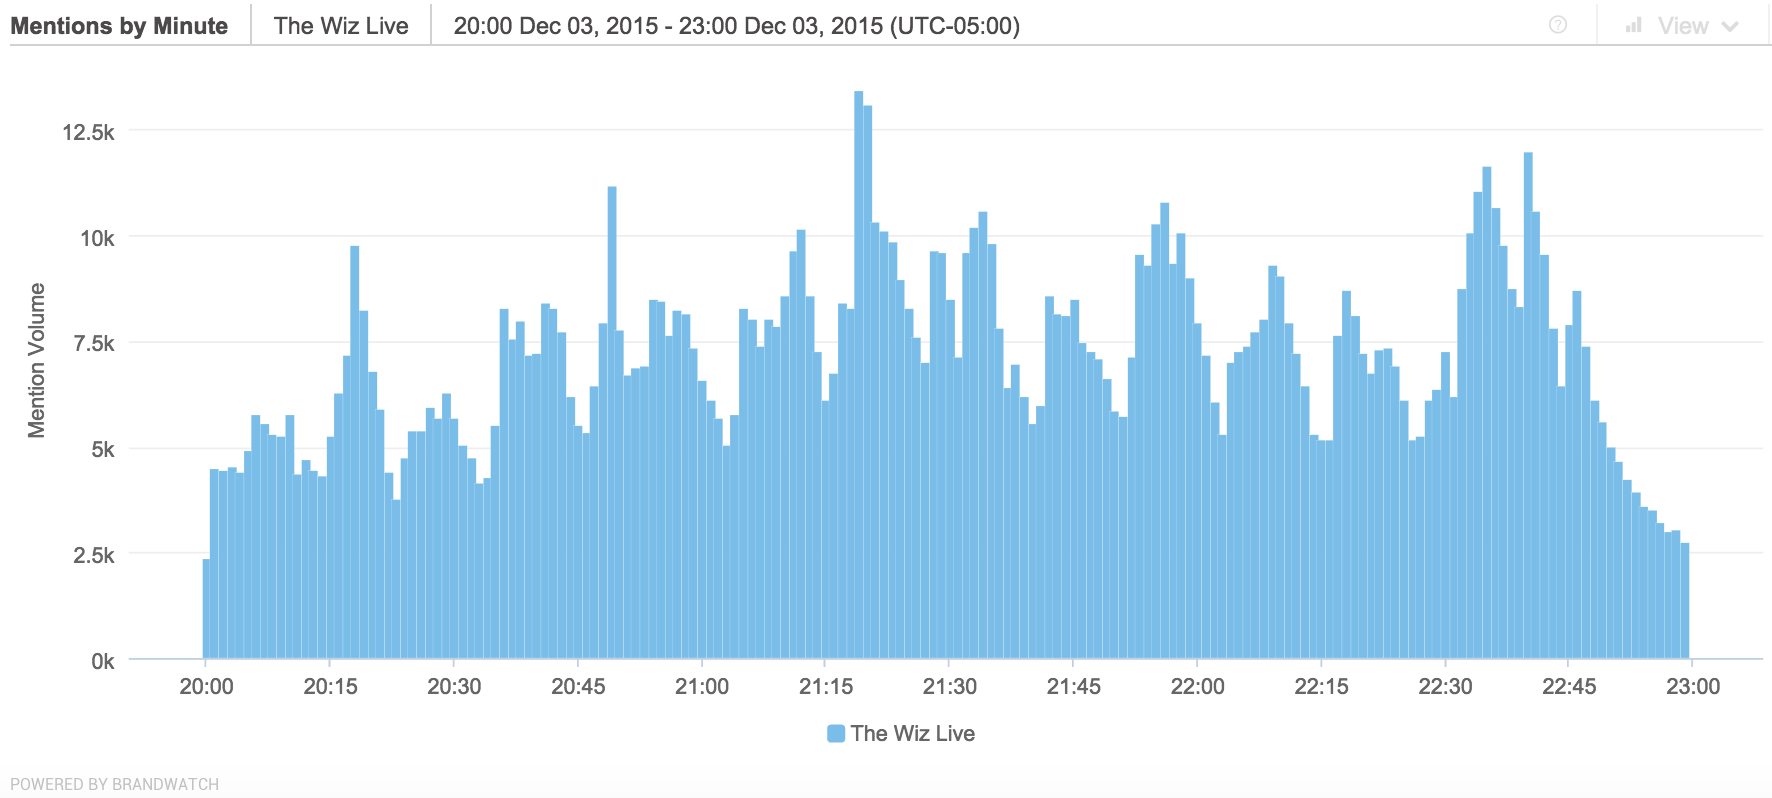 The-Wiz-Live-Tweets-Per-Minute